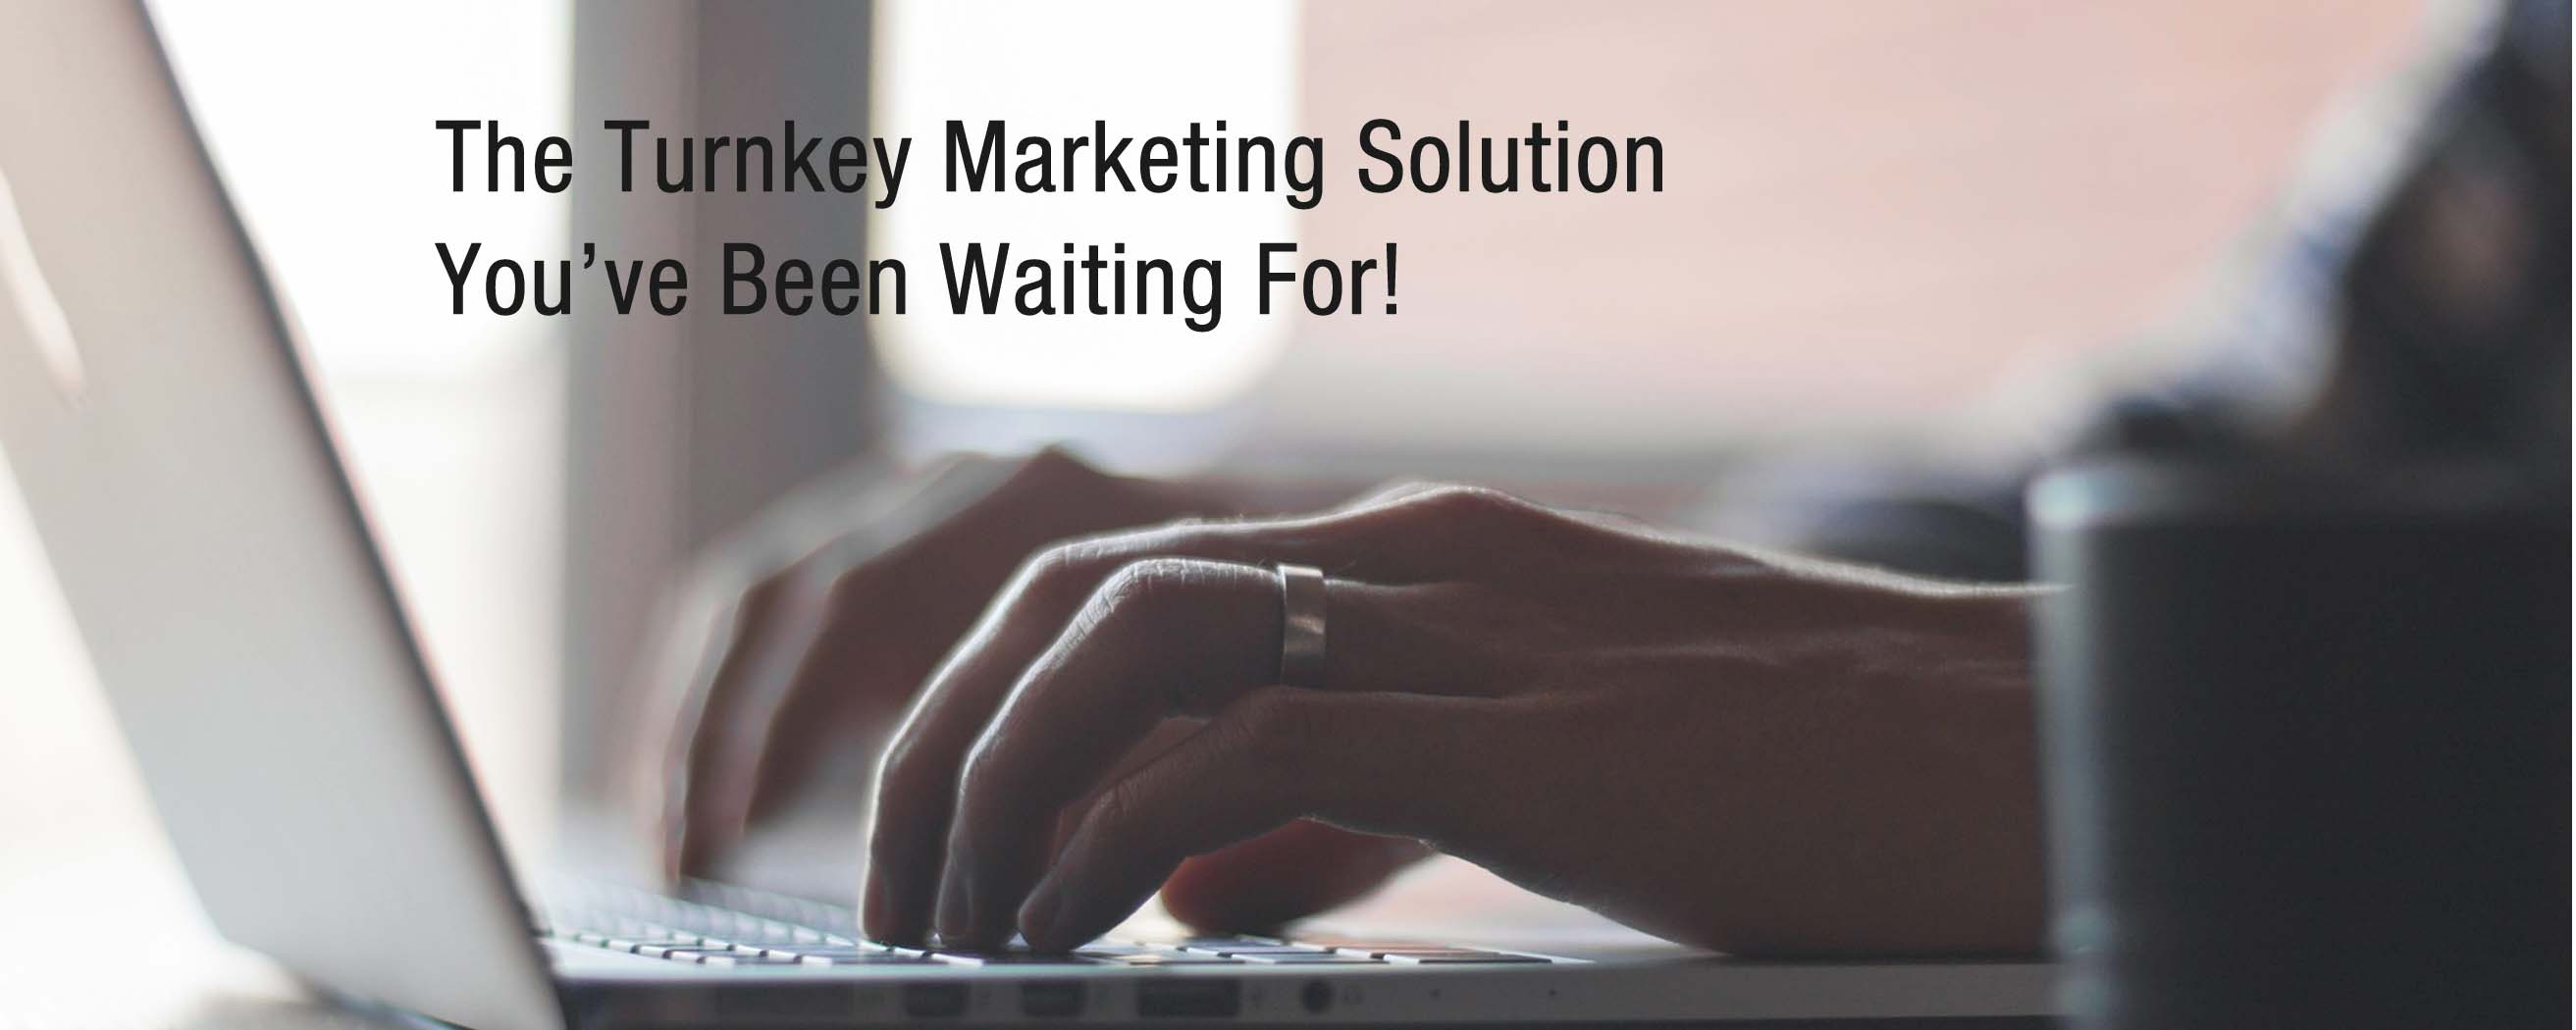 TurnkeyMarketing